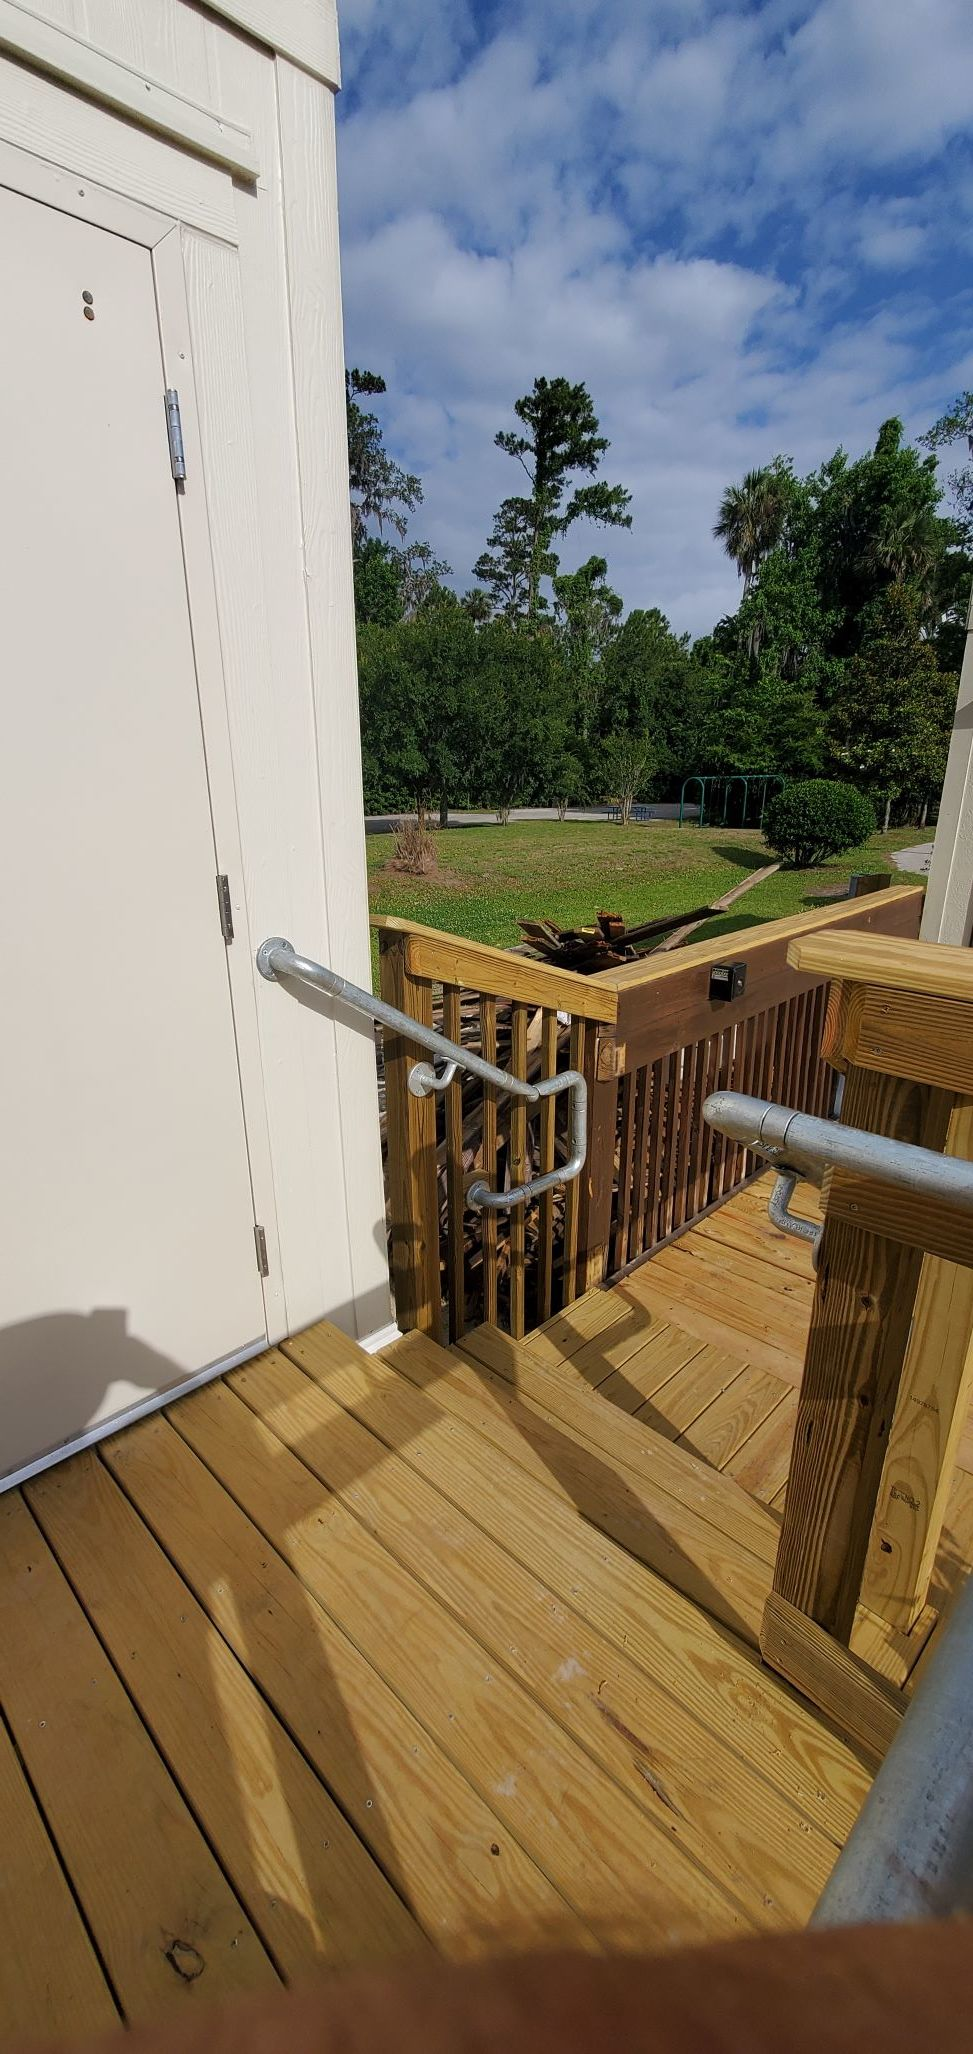 ADA Rail Attached to Wooden Rail